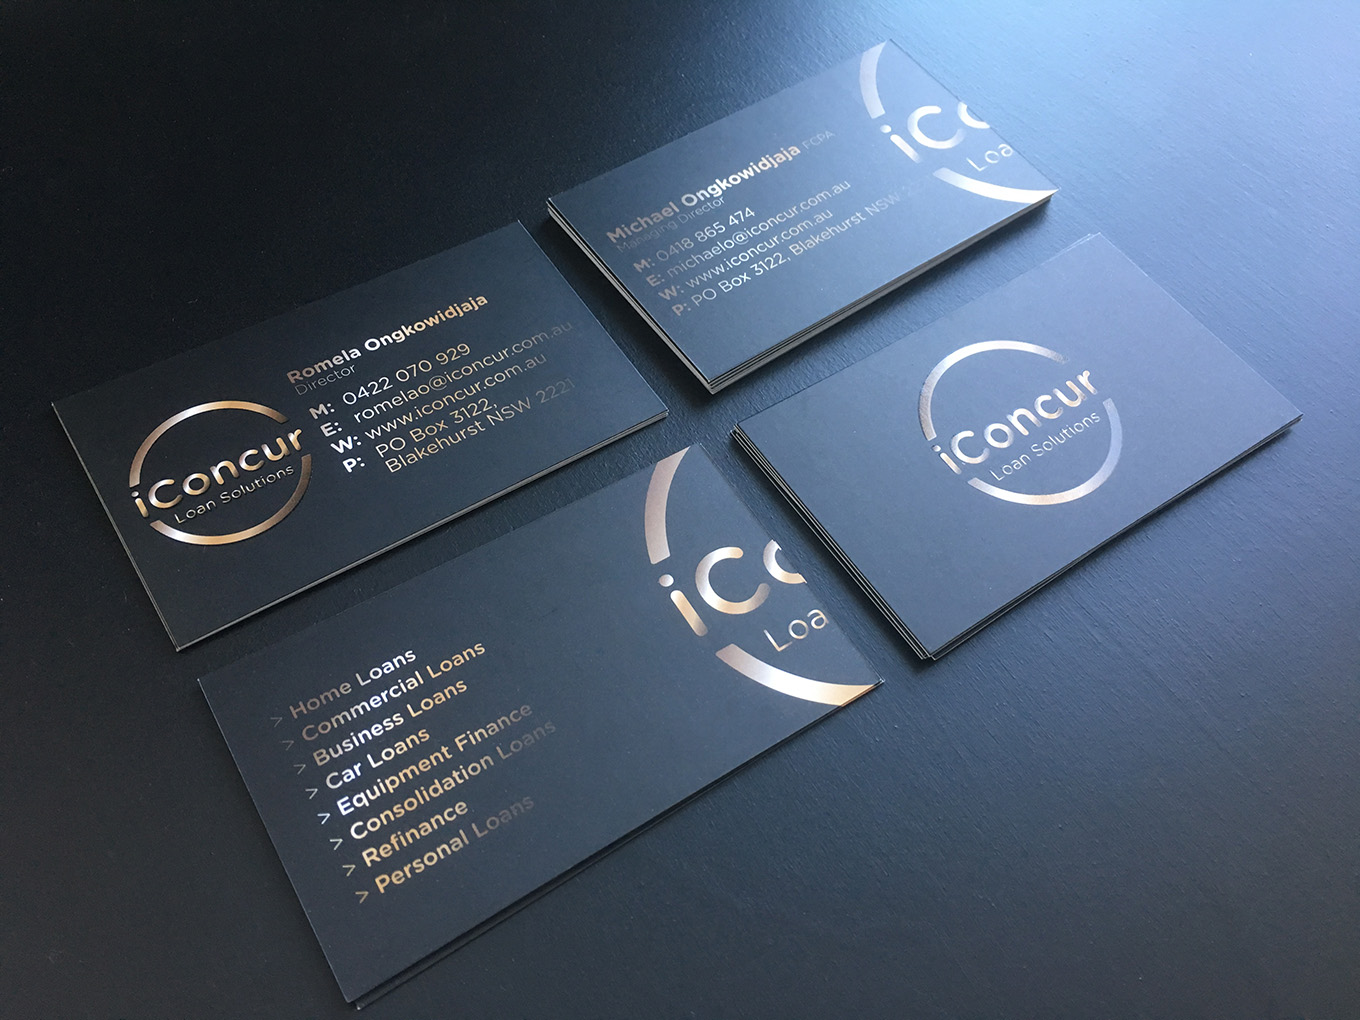 iConcur Loan Solutions logo and business cards design by FOX DESIGN